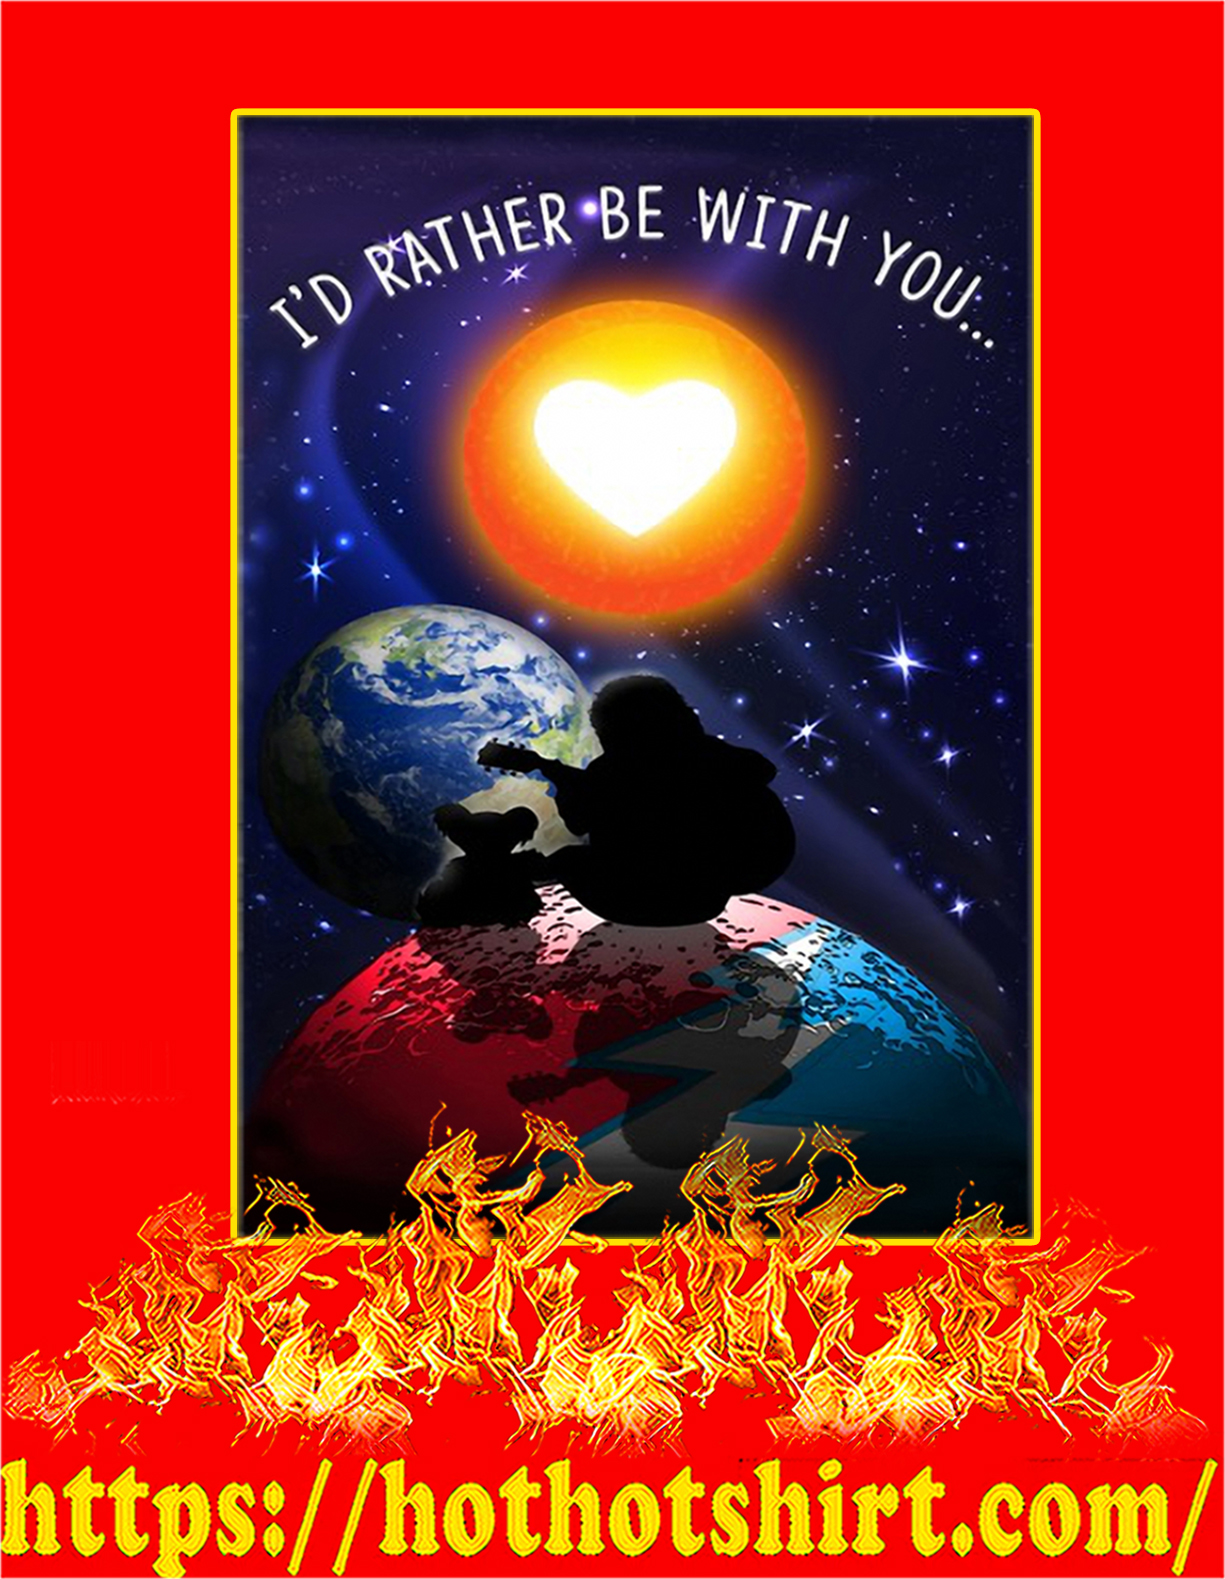 I'd rather be with you steven universe poster - A4